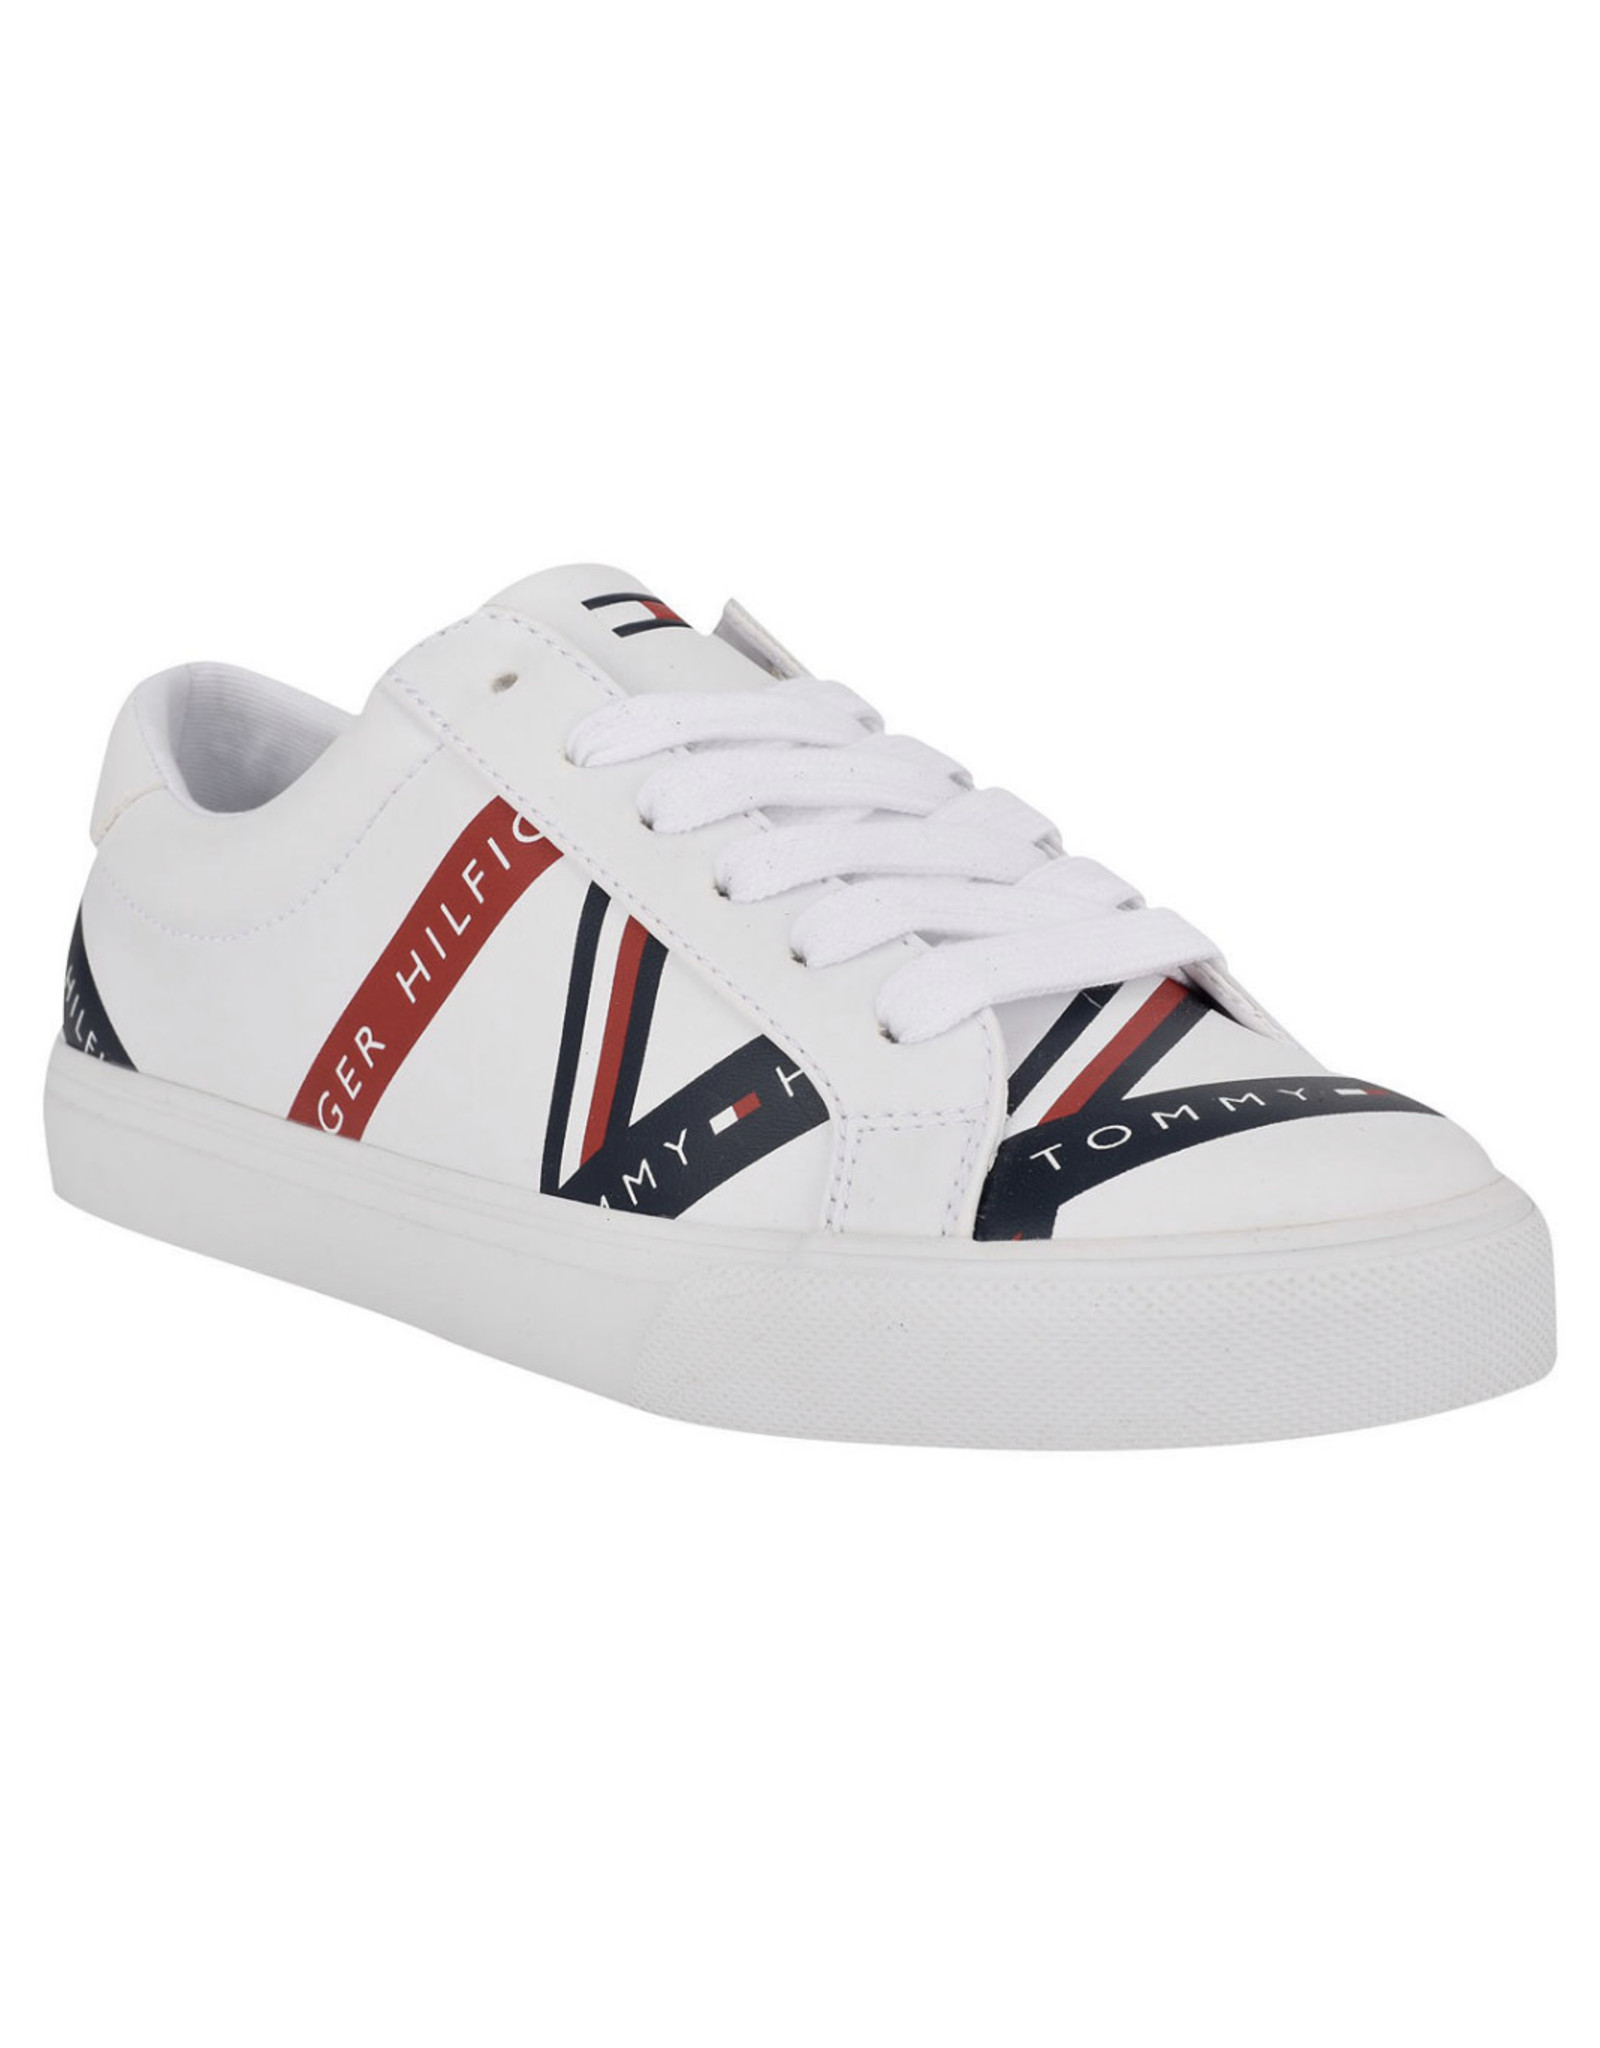 Tommy Hilfiger Tommy Hilfiger Sneakers Lacen Lace Up